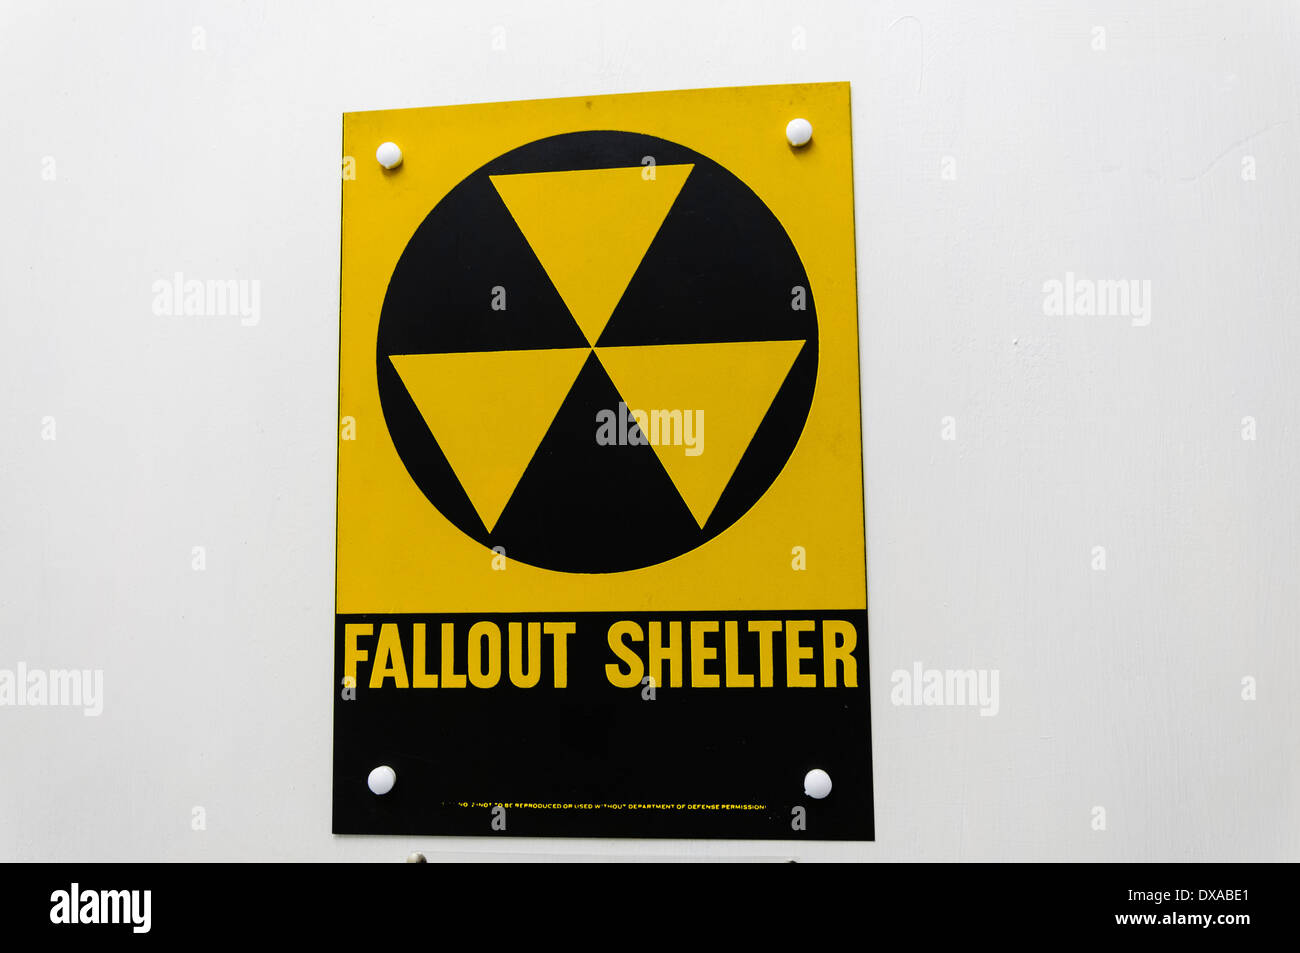 Warning sign at a nuclear fallout shelter Stock Photo